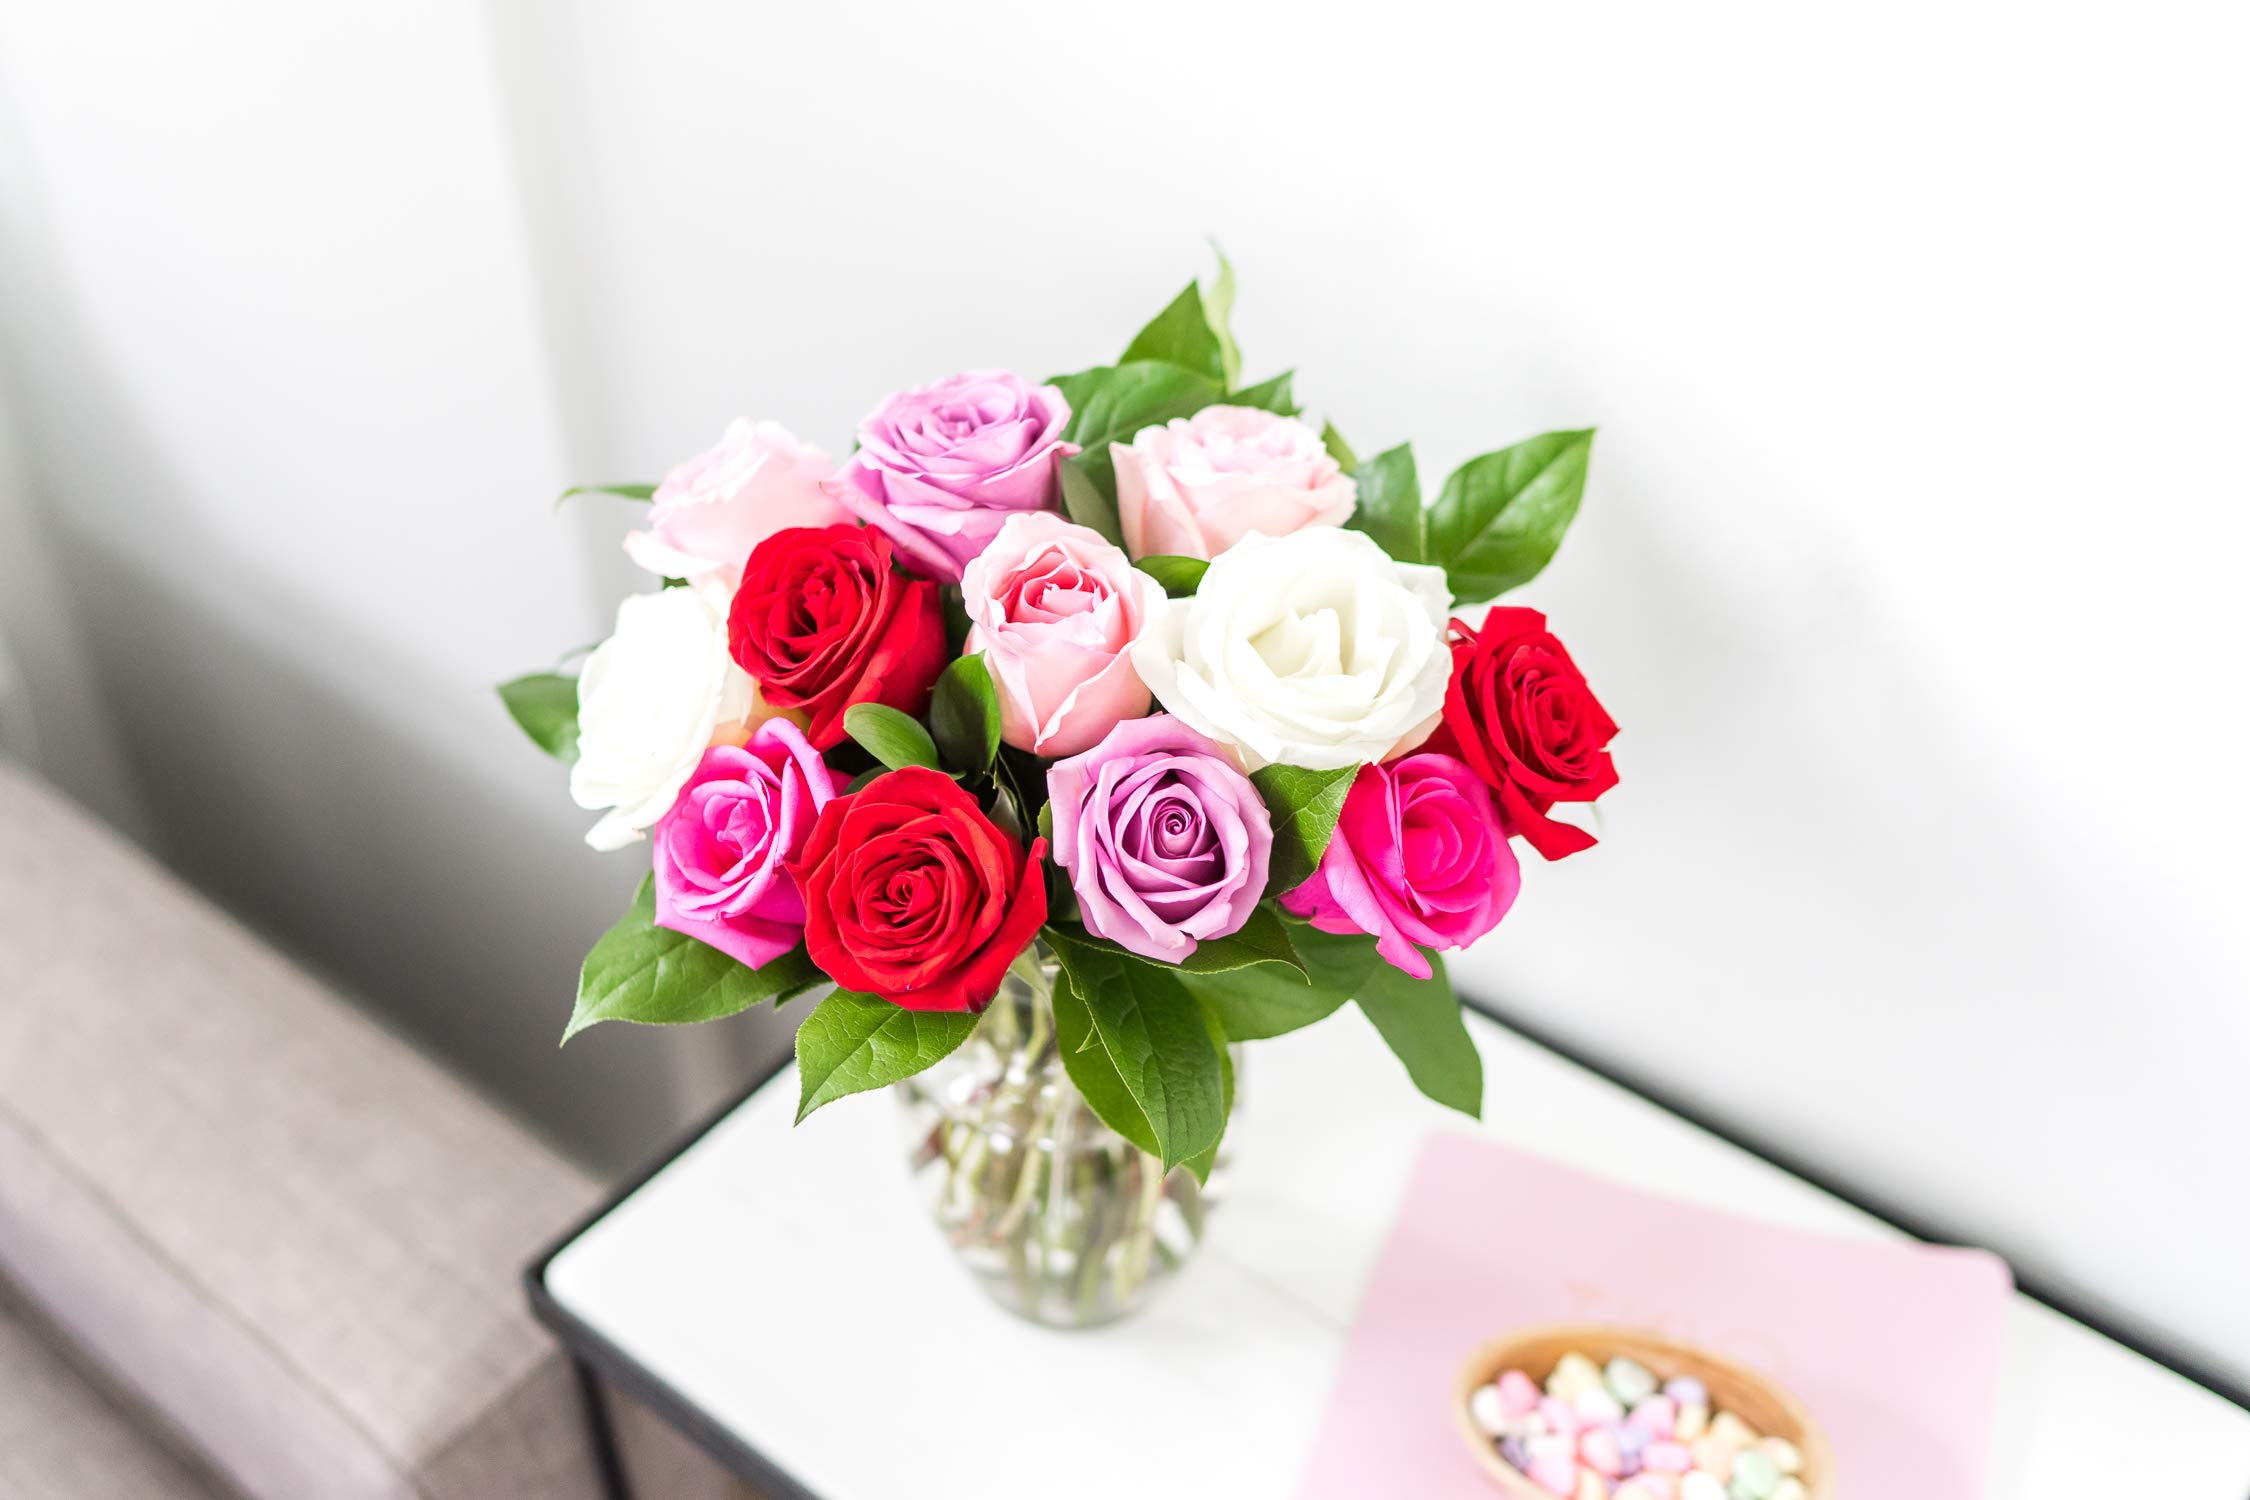 Flowers - One Dozen Assorted Sweetheart Roses with Godiva & Bear (Free Vase Included) by From You Flowers